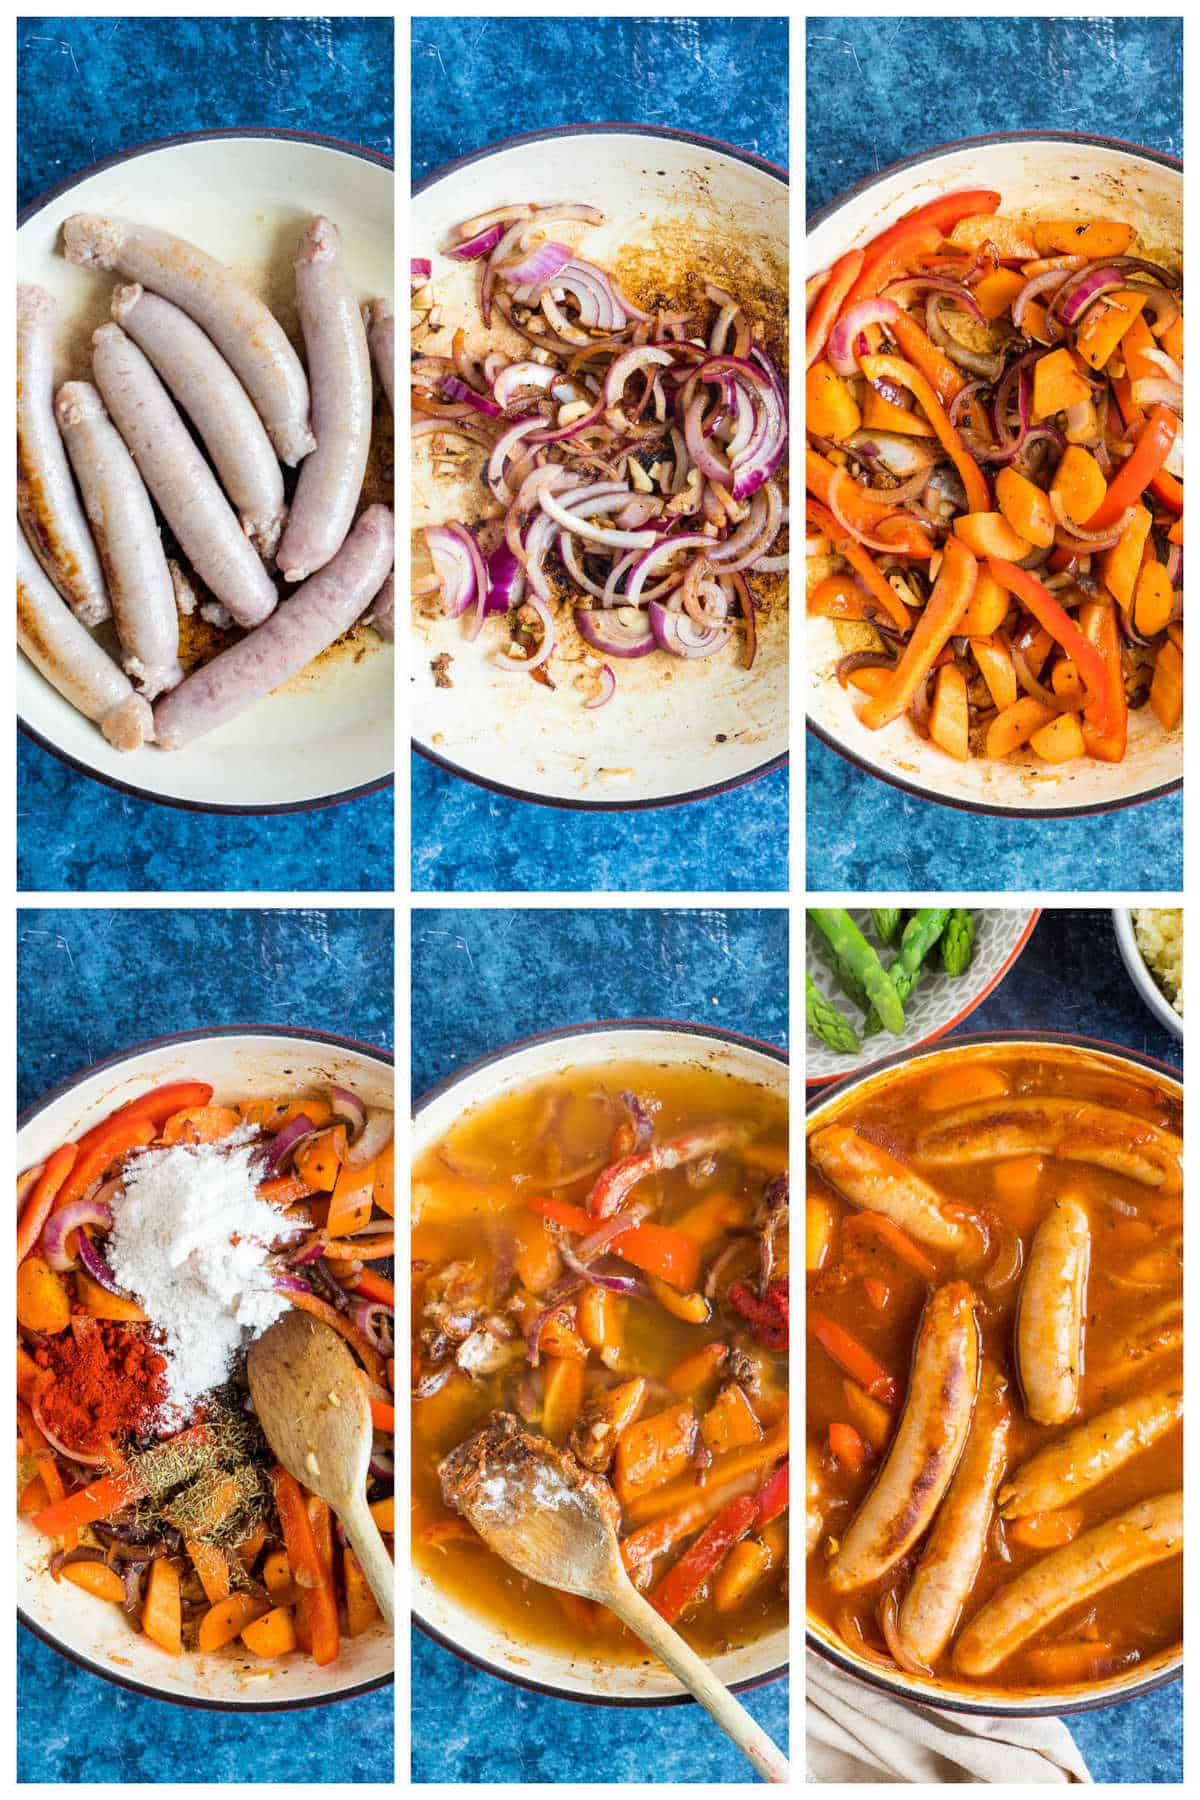 Step by step photo instructions for making sausage casserole.